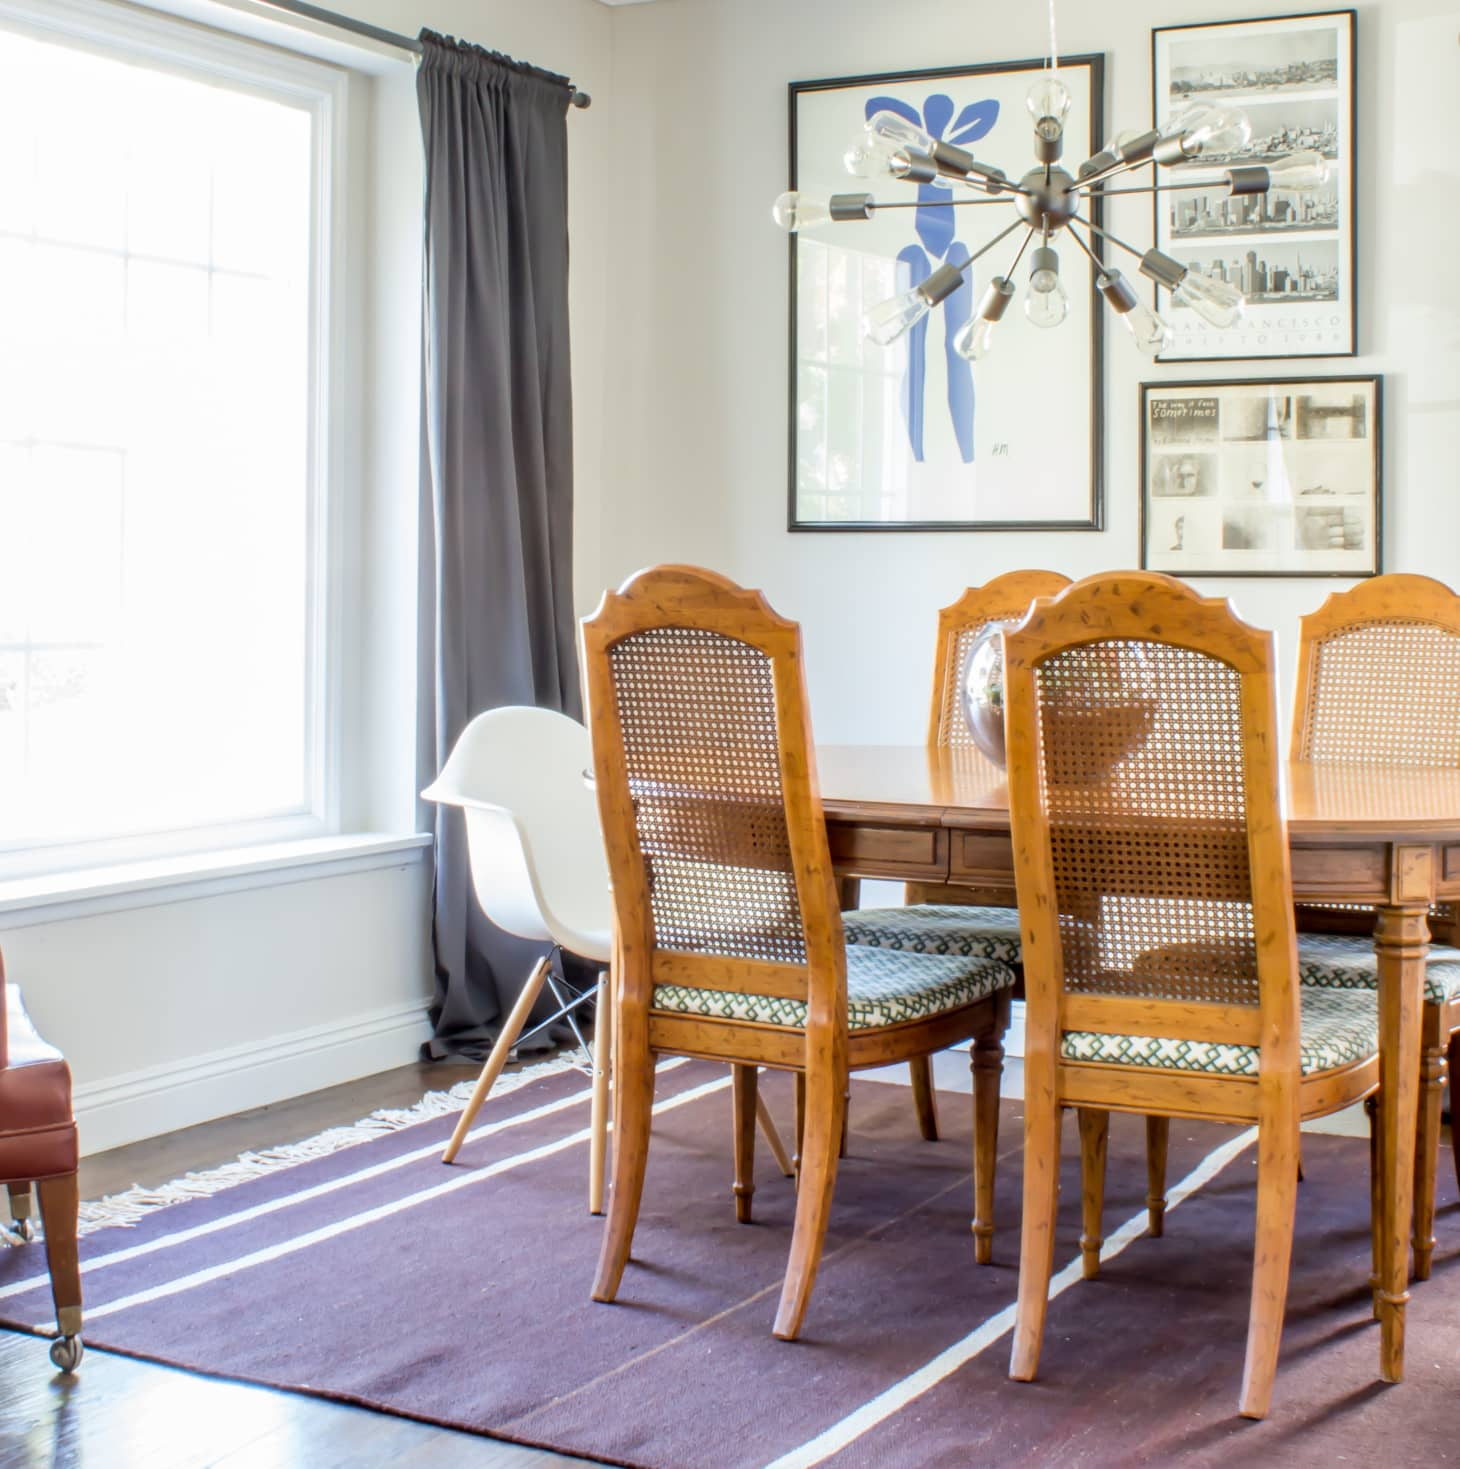 Craigslist Dc Apartments: House Tour: A Couple's Adventurous California House